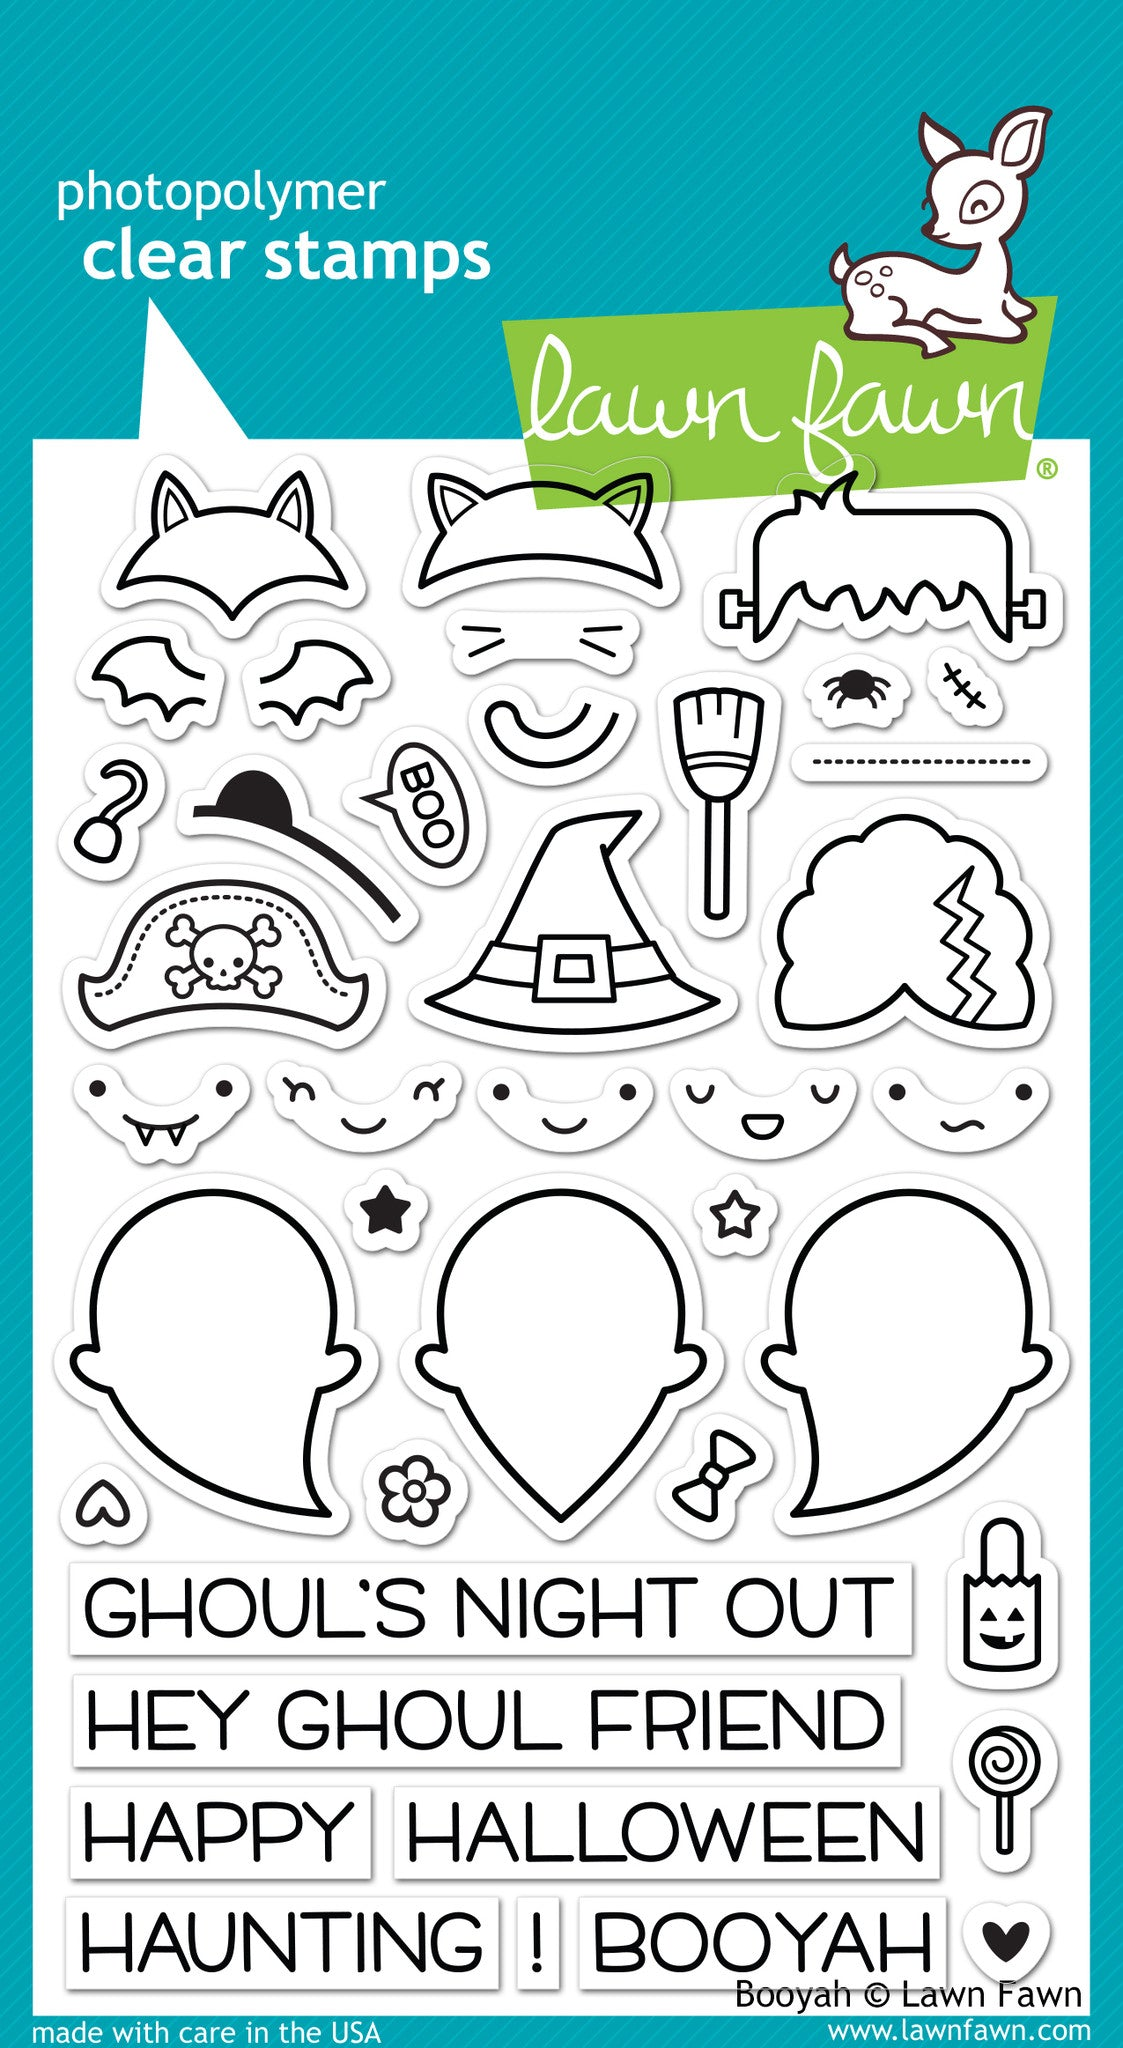 LF932 Booyah Lawn Fawn Clear Stamps